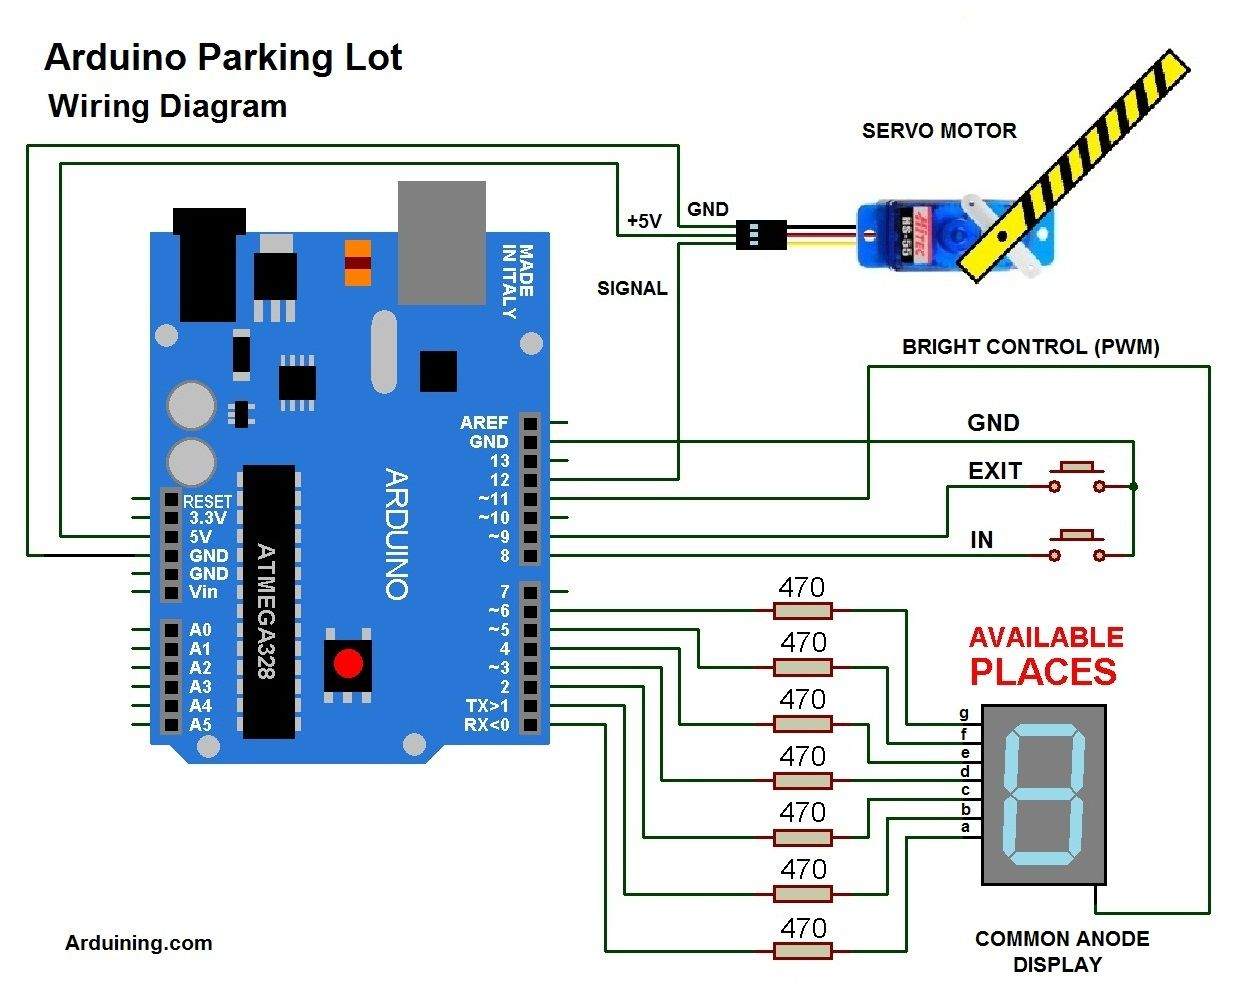 medium resolution of wiring diagram here is the code parkingl02 pde arduining com 08 parking circuit wiring diagram